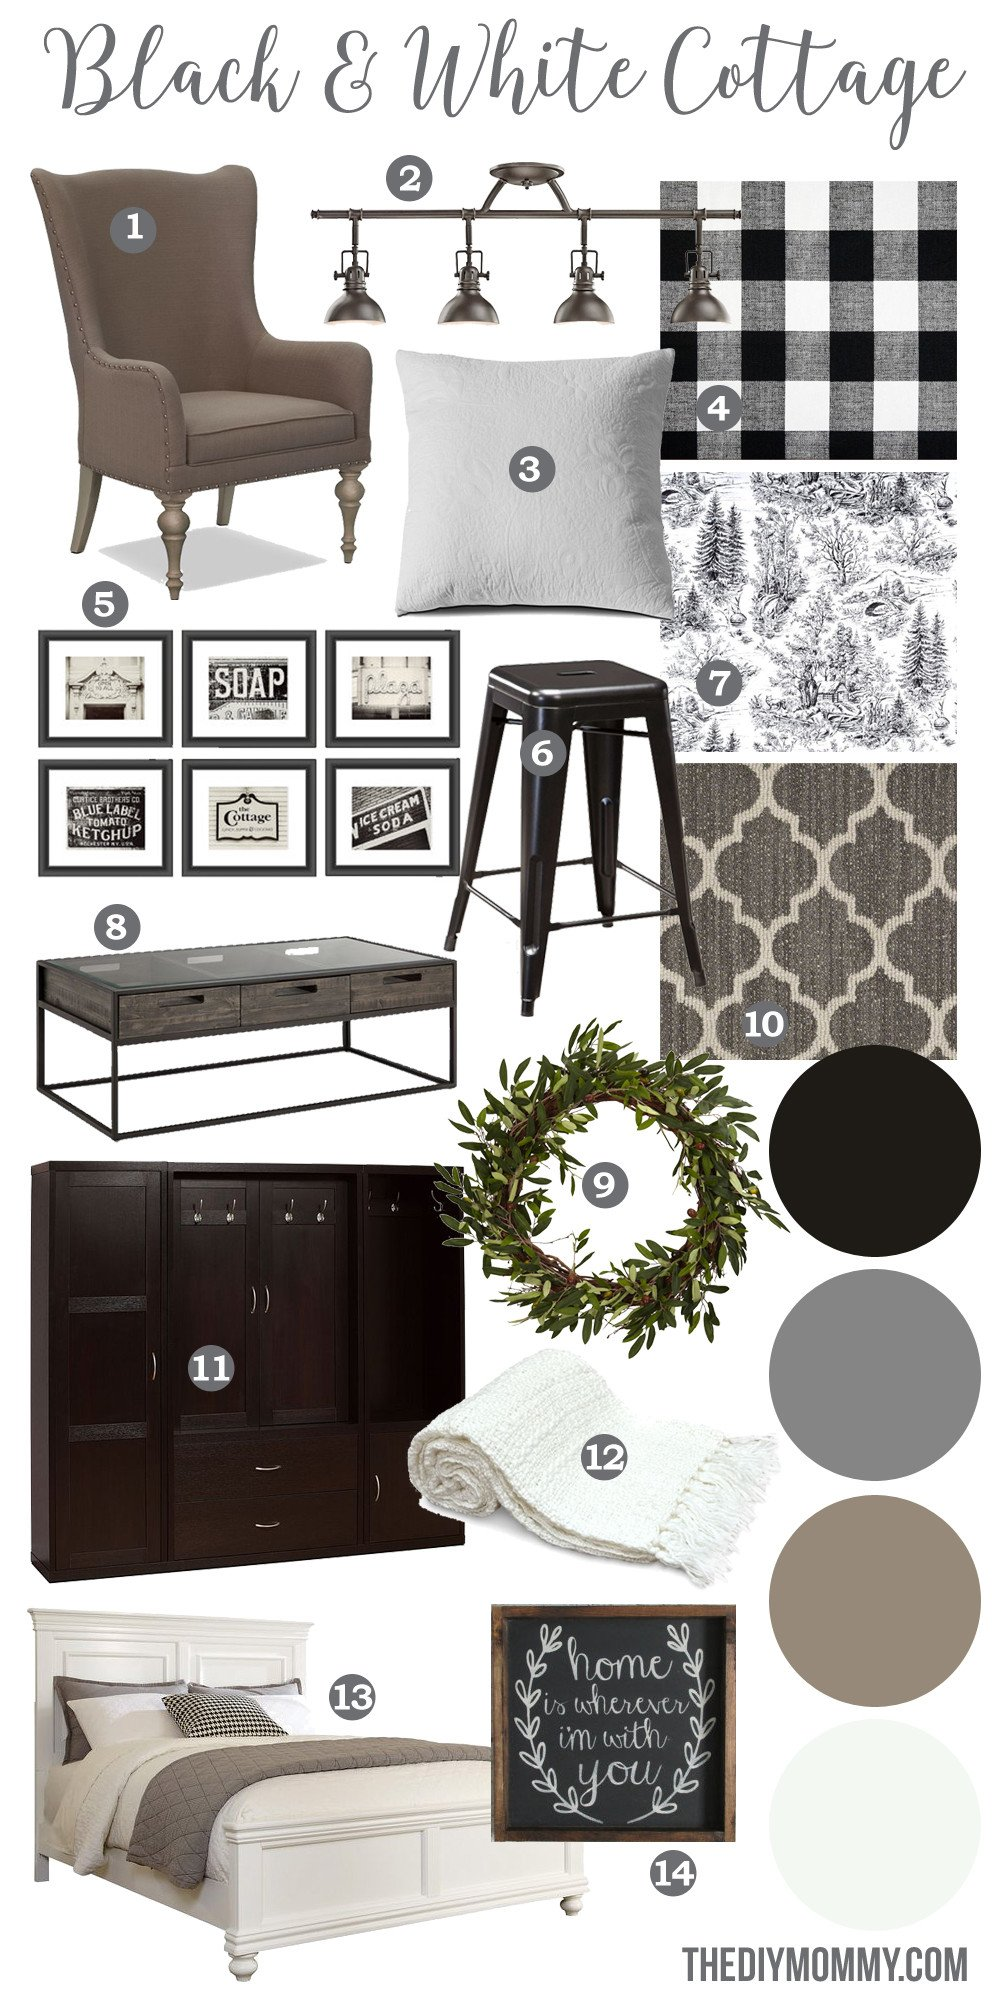 Black and White Farmhouse Decor Fresh Mood Board A Black & White Guest Cottage – Our Newest Small Space Bud Renovation Project